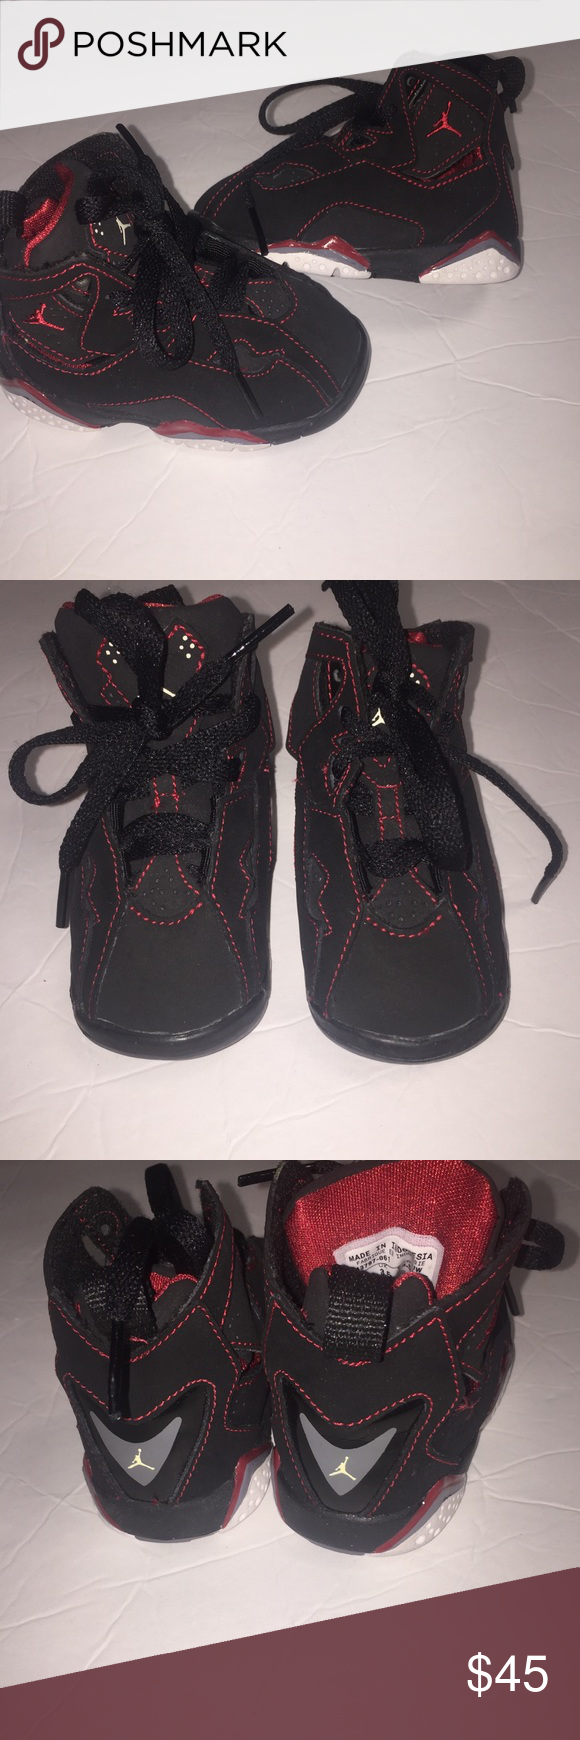 da66308b668 Kids Nike Air Jordans Retro 7 Black red sneakers 4 Toddler Kids Nike Air  Jordans Retro 7 Black red sneakers size 4c. Good condition. No box.